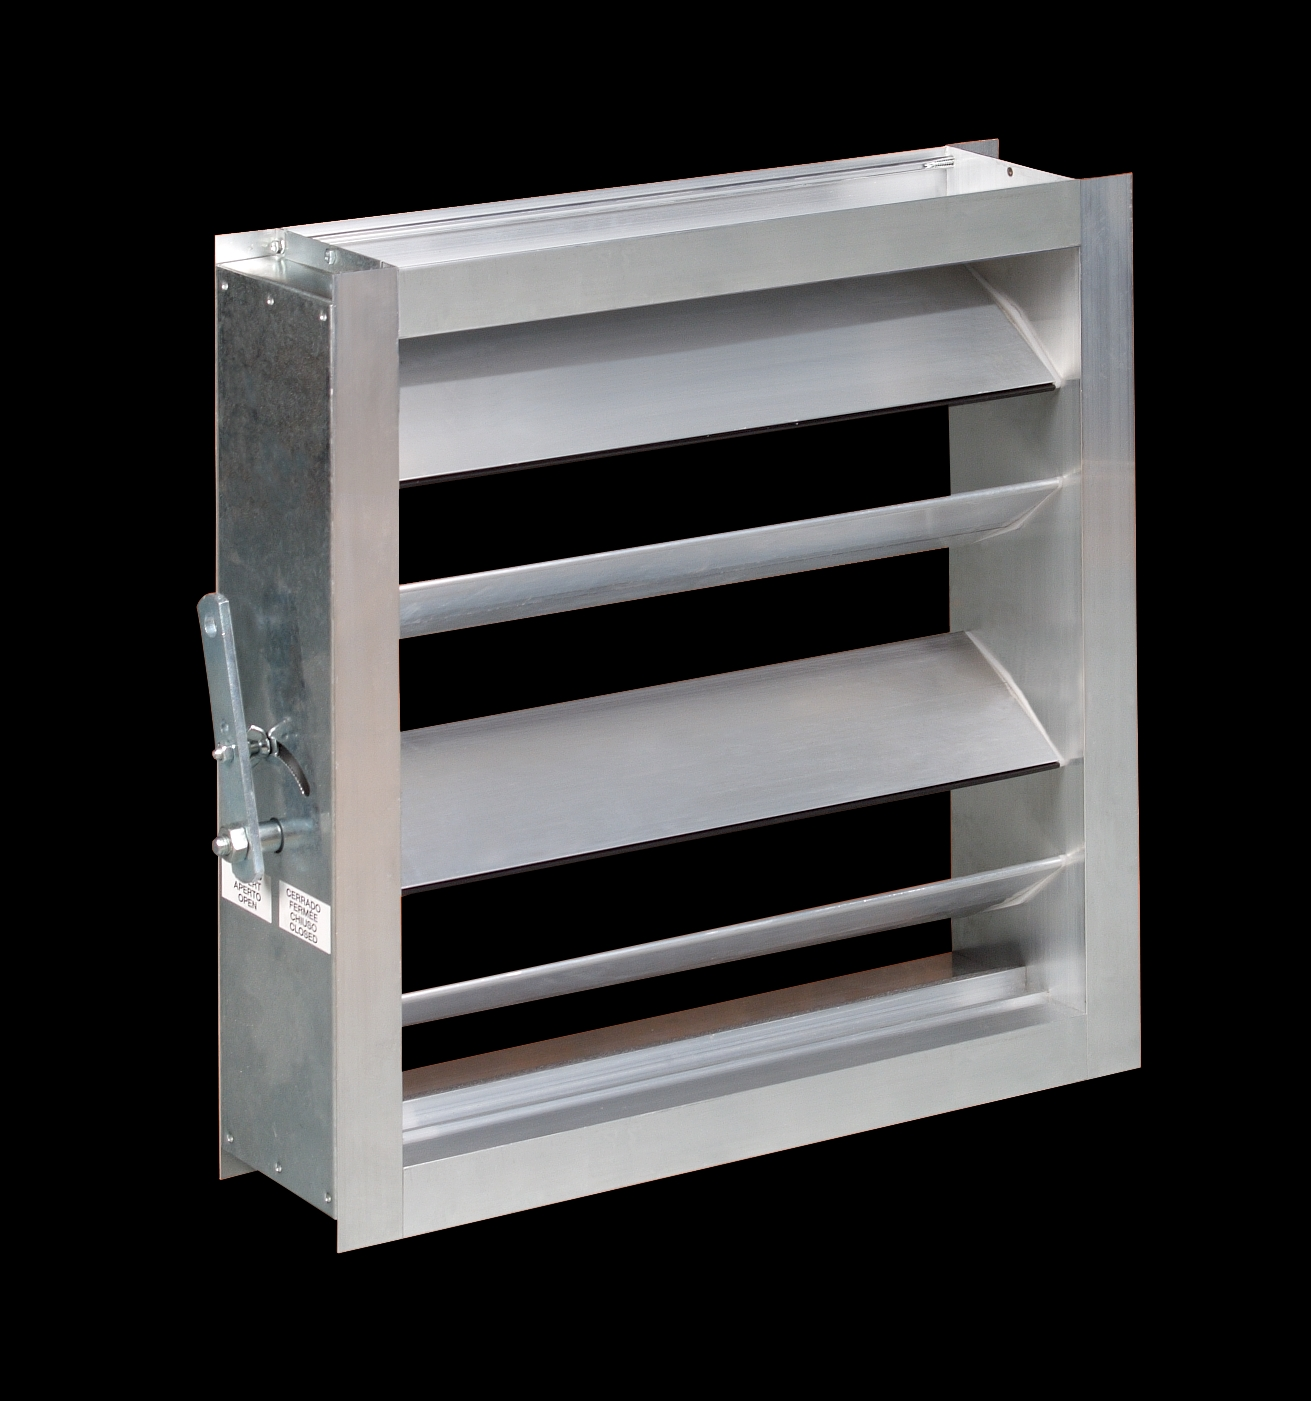 Madel SQR (Air volume dampers for rectangular ducts) BIM